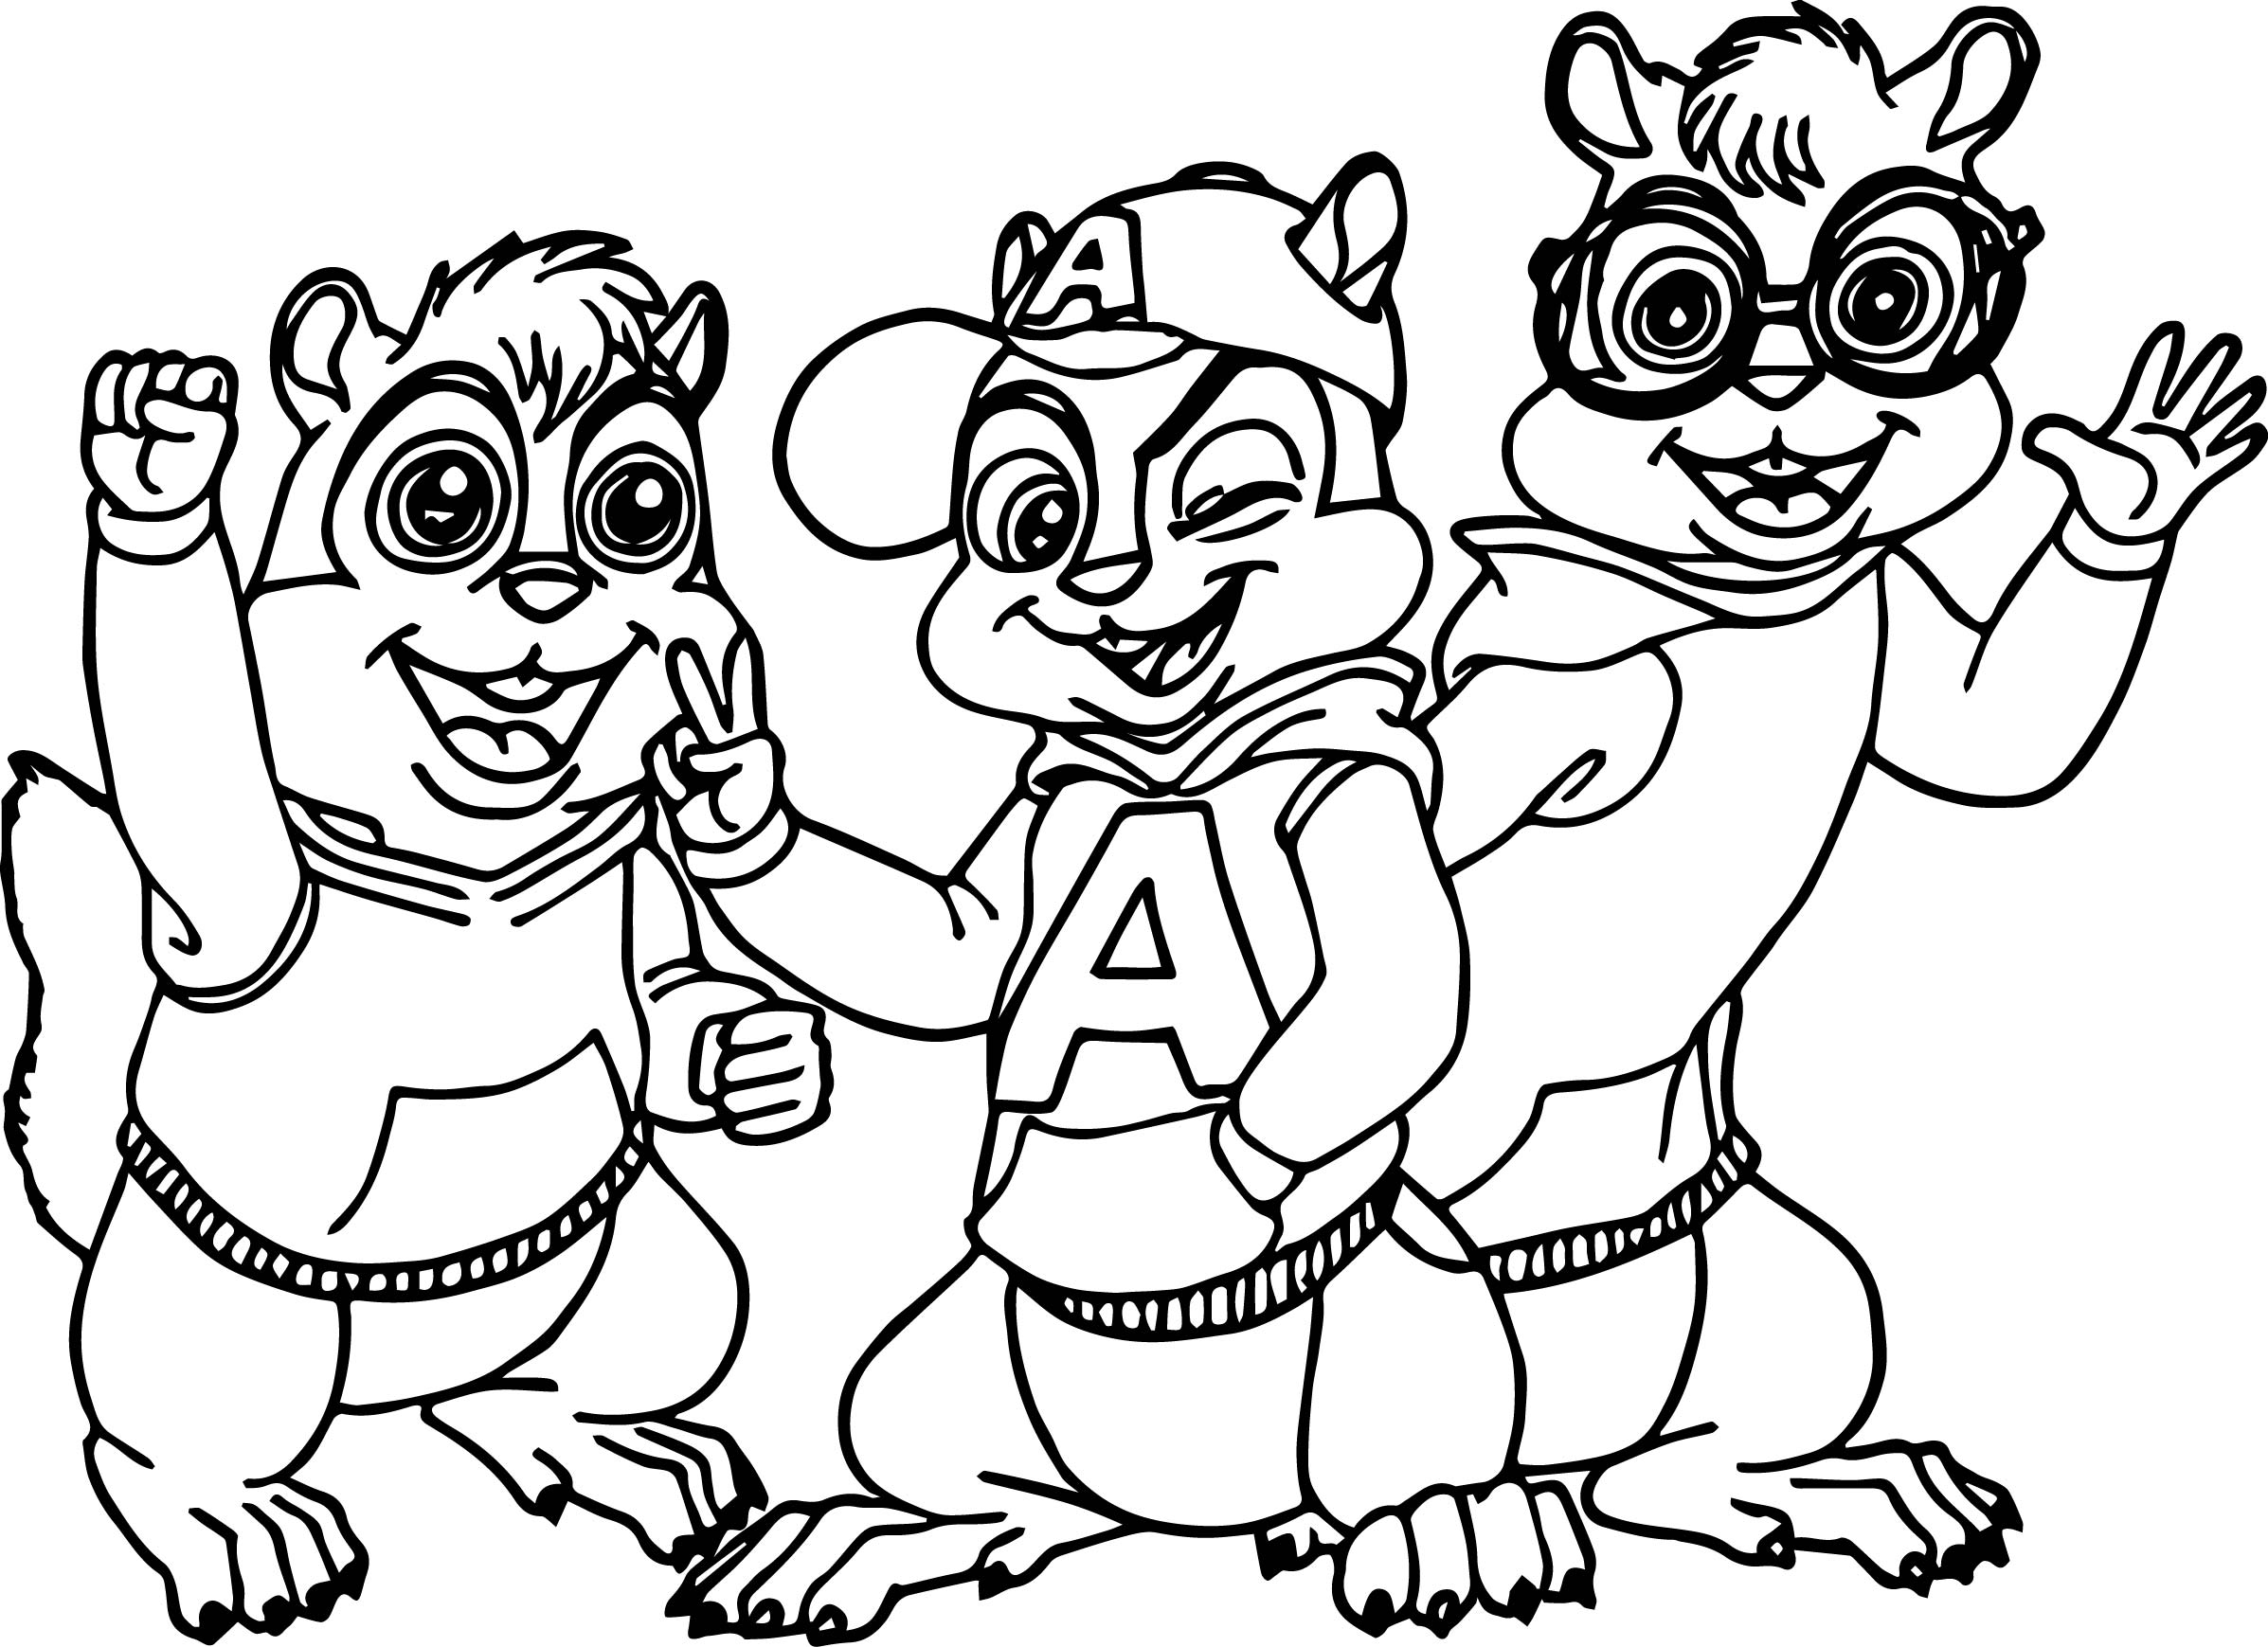 alvin and the chipmunks coloring pages pdf - chipmunks free colouring pages